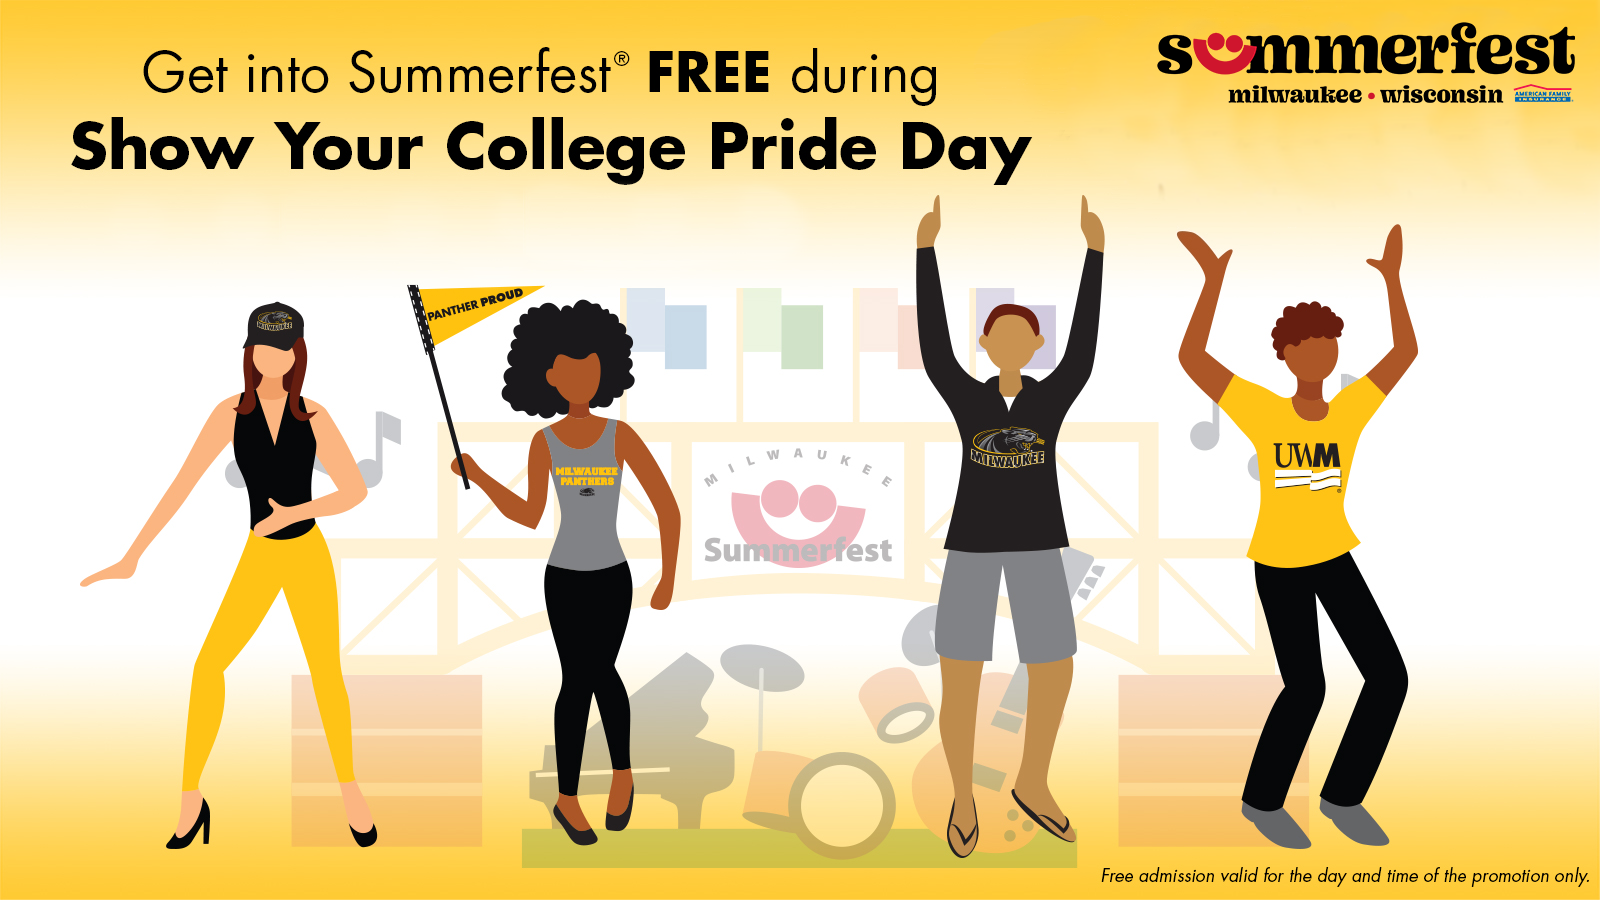 Details For Event 20182 – Show Your College Pride Day at Summerfest